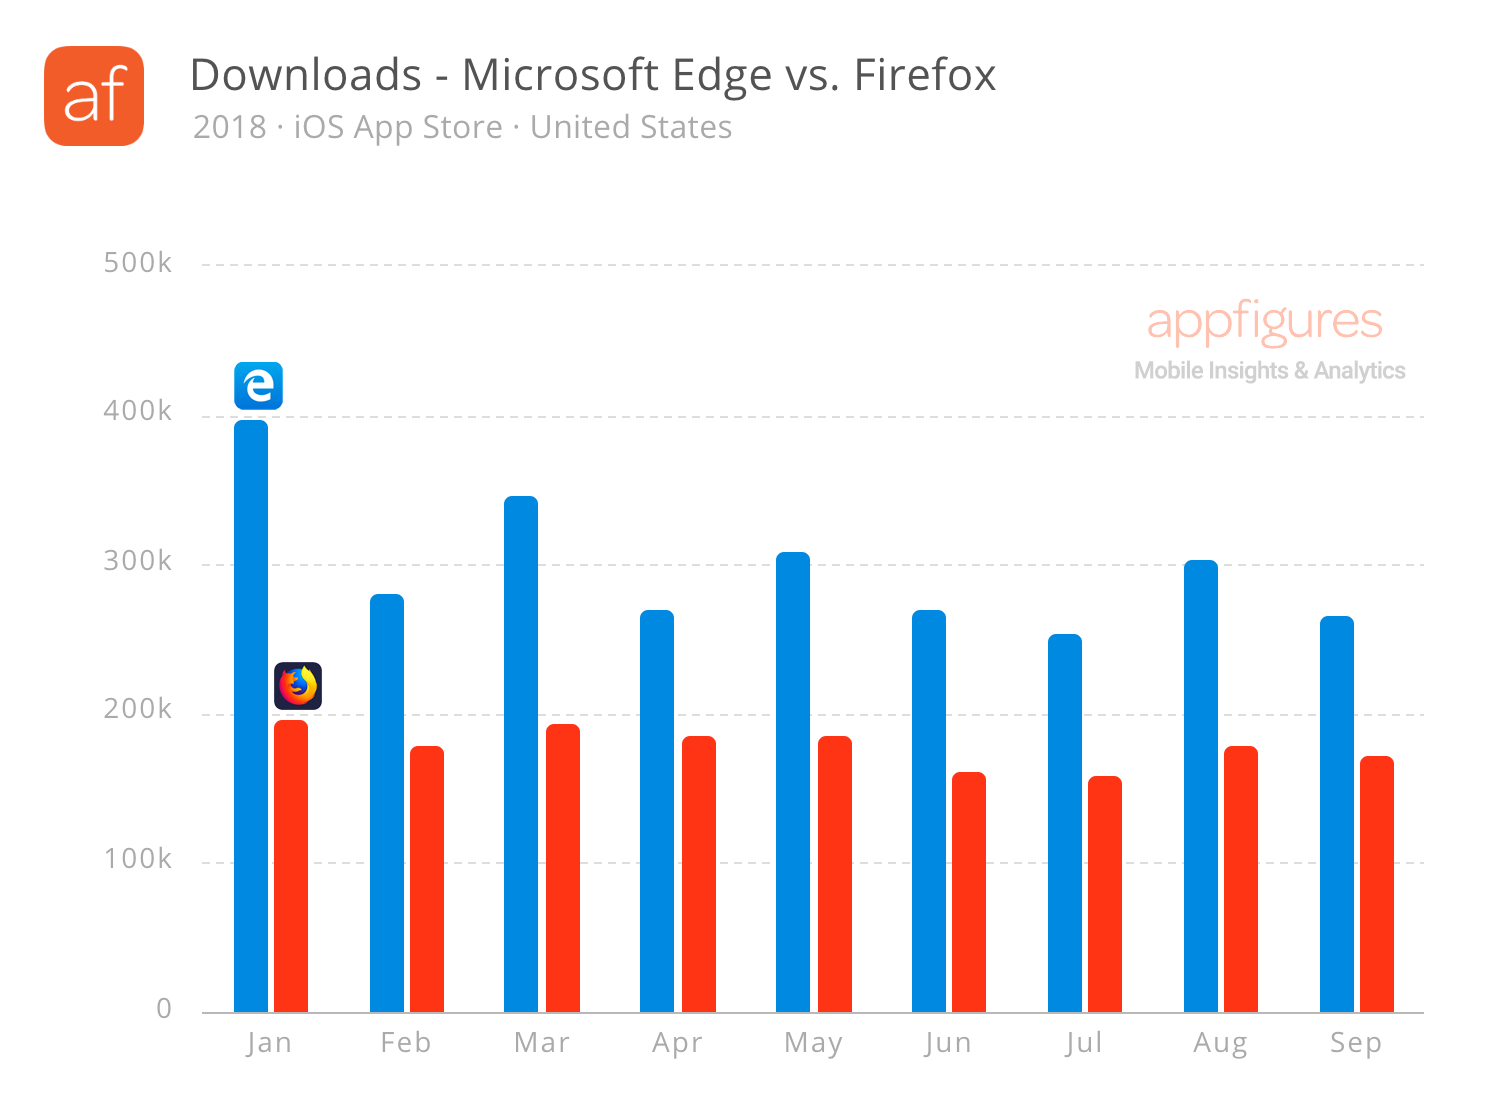 Estimated Downloads for Microsoft Edge and Mozilla Firefox for iOS in the United States (2018)